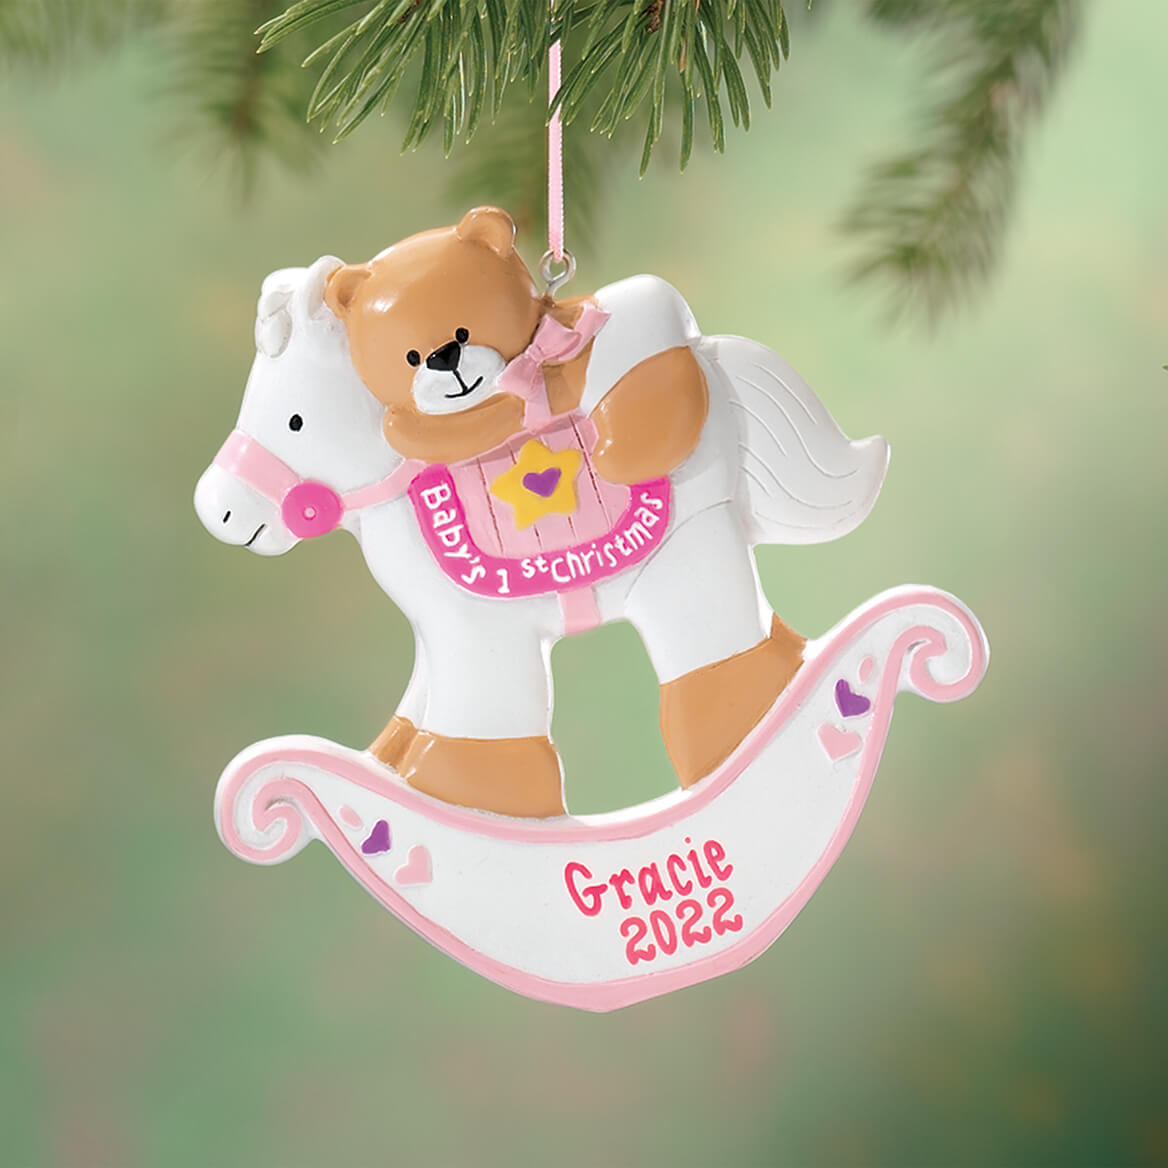 Personalized Baby's First Christmas Rocking Horse Ornament-339116